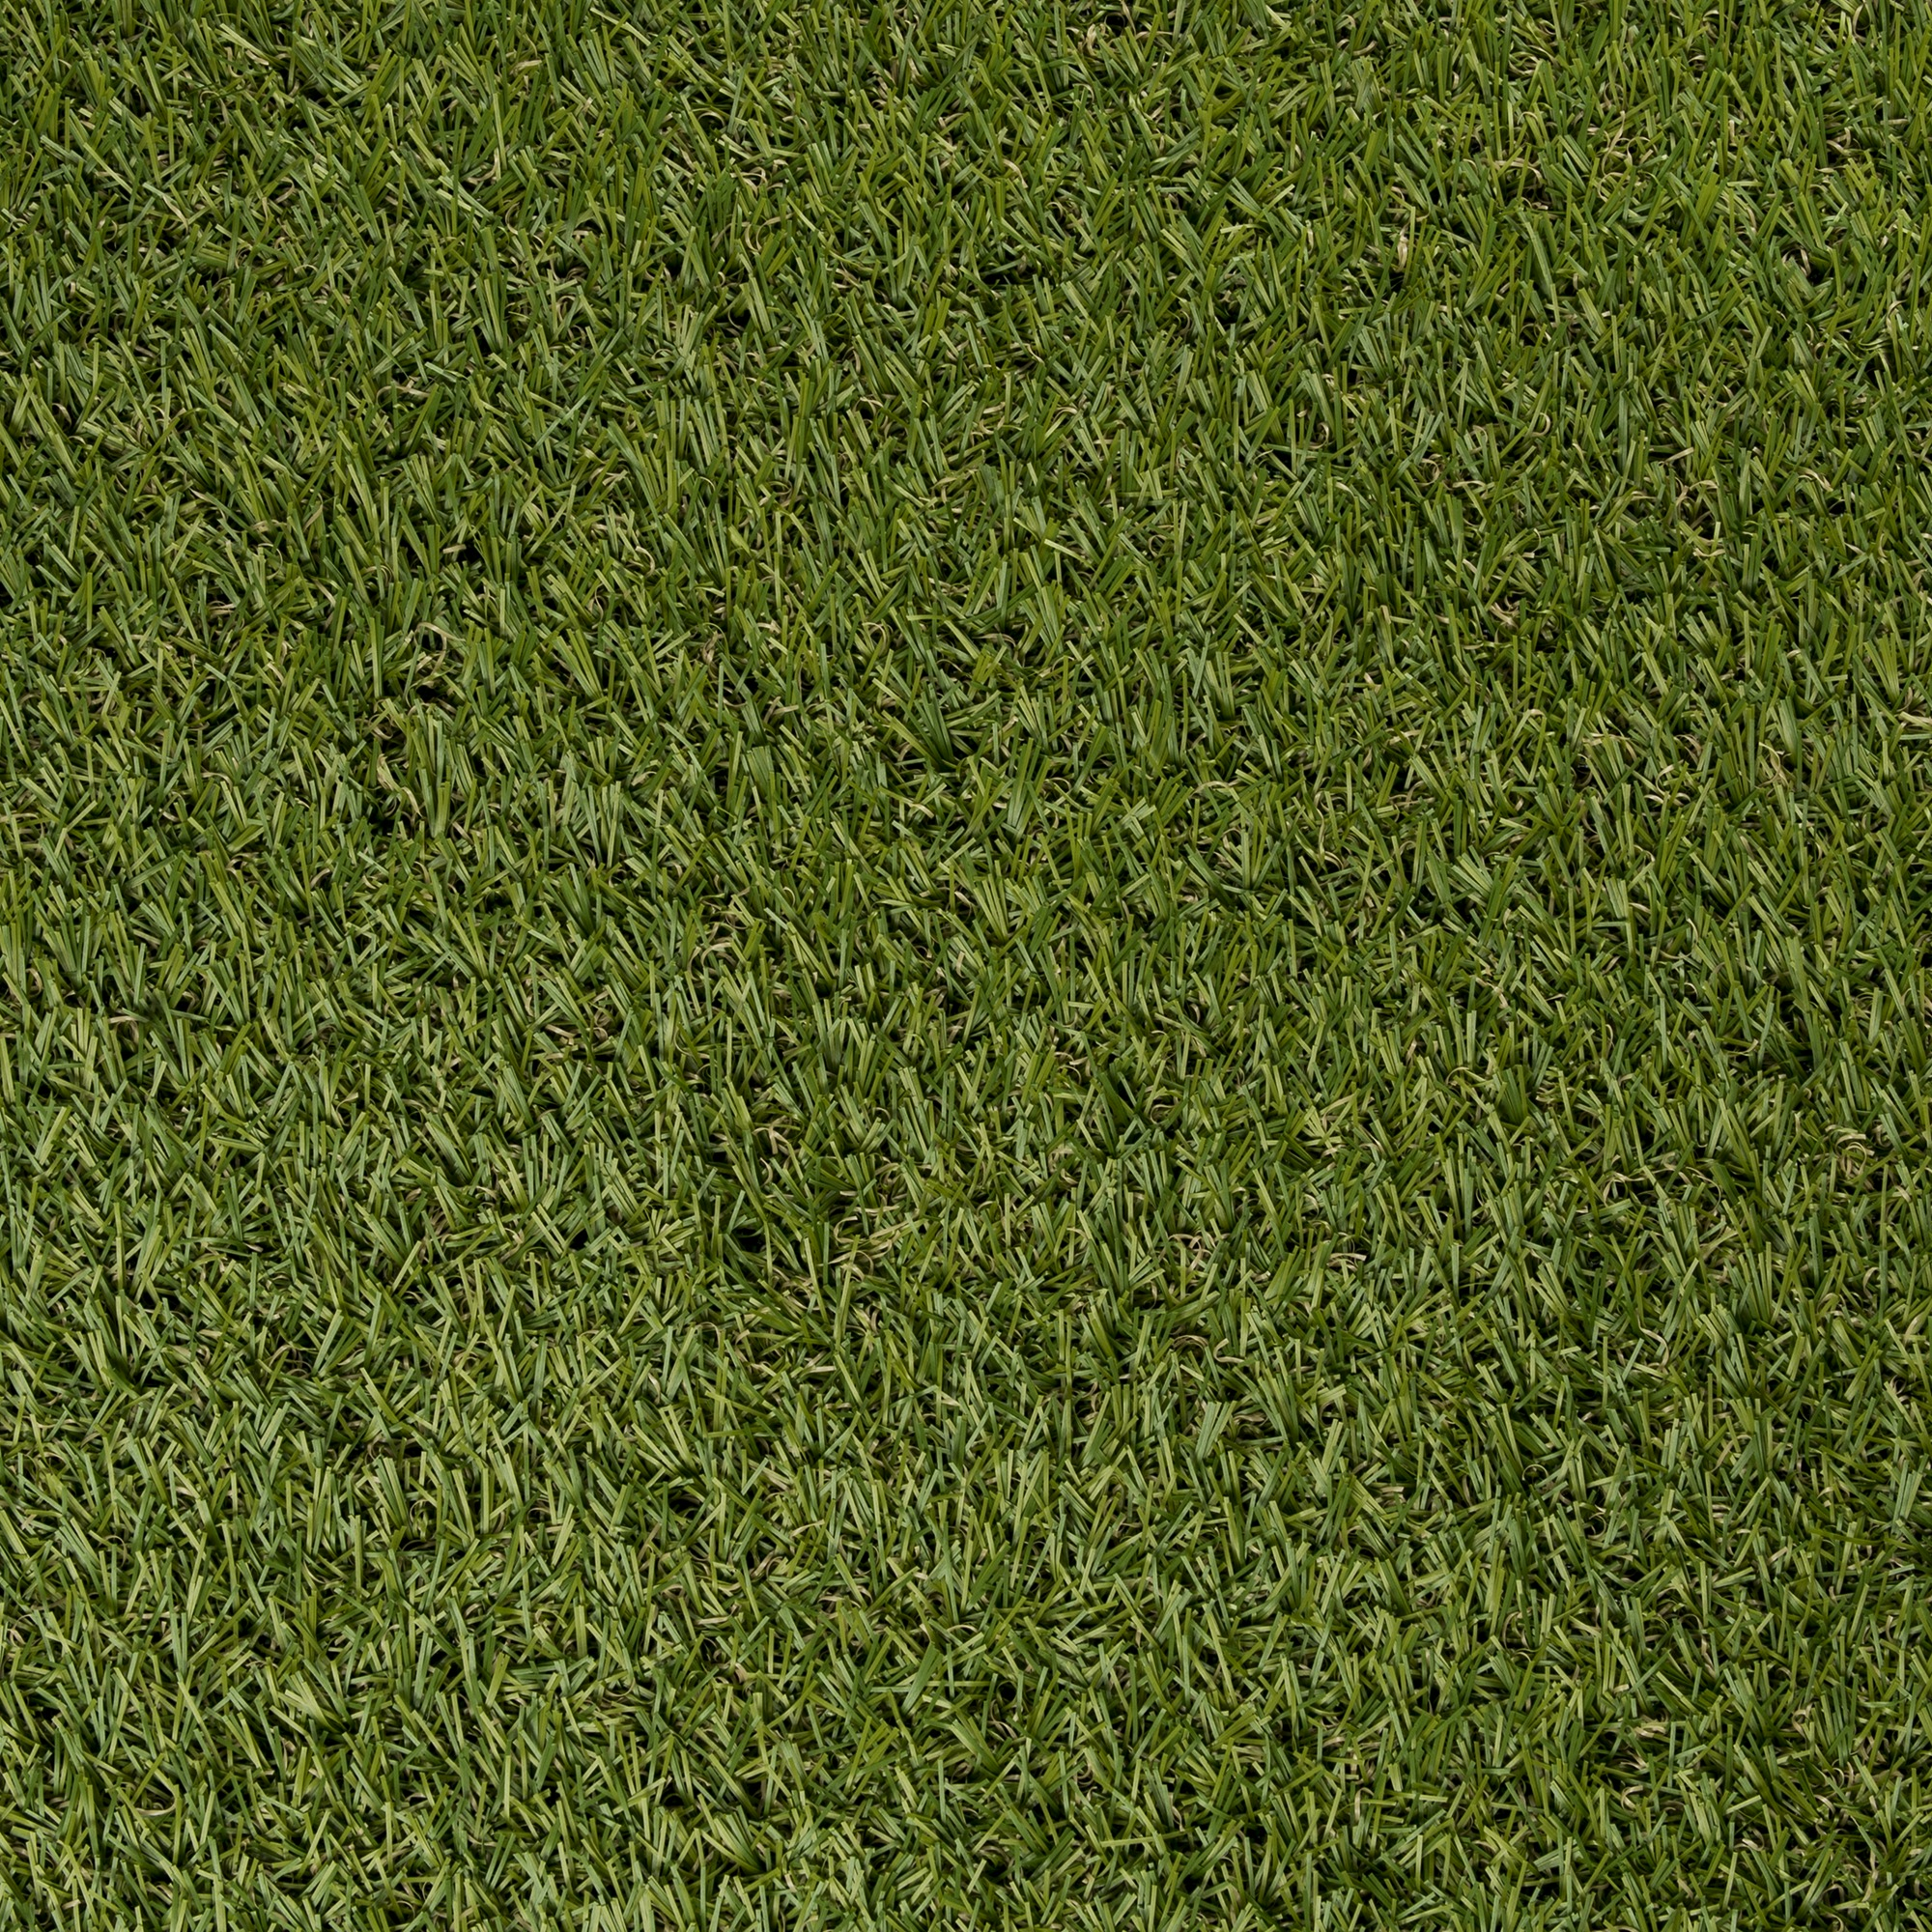 Gazon artificiel selectgrass 200x300 cm gazon Entretien gazon synthetique